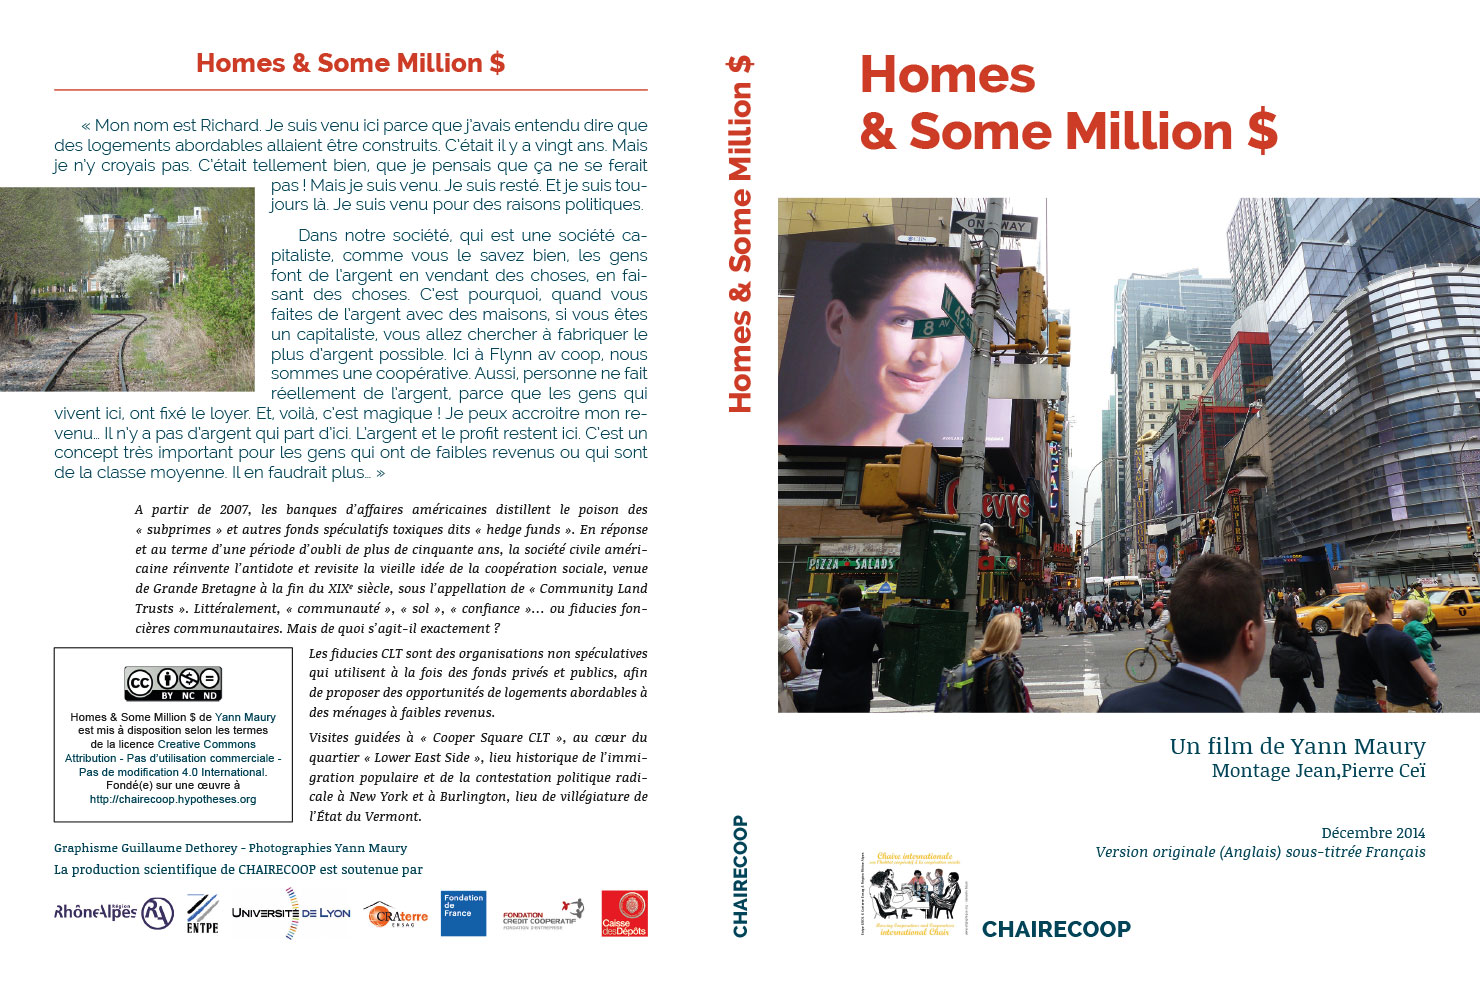 Jaquette du dvd du film Home & Some Millions